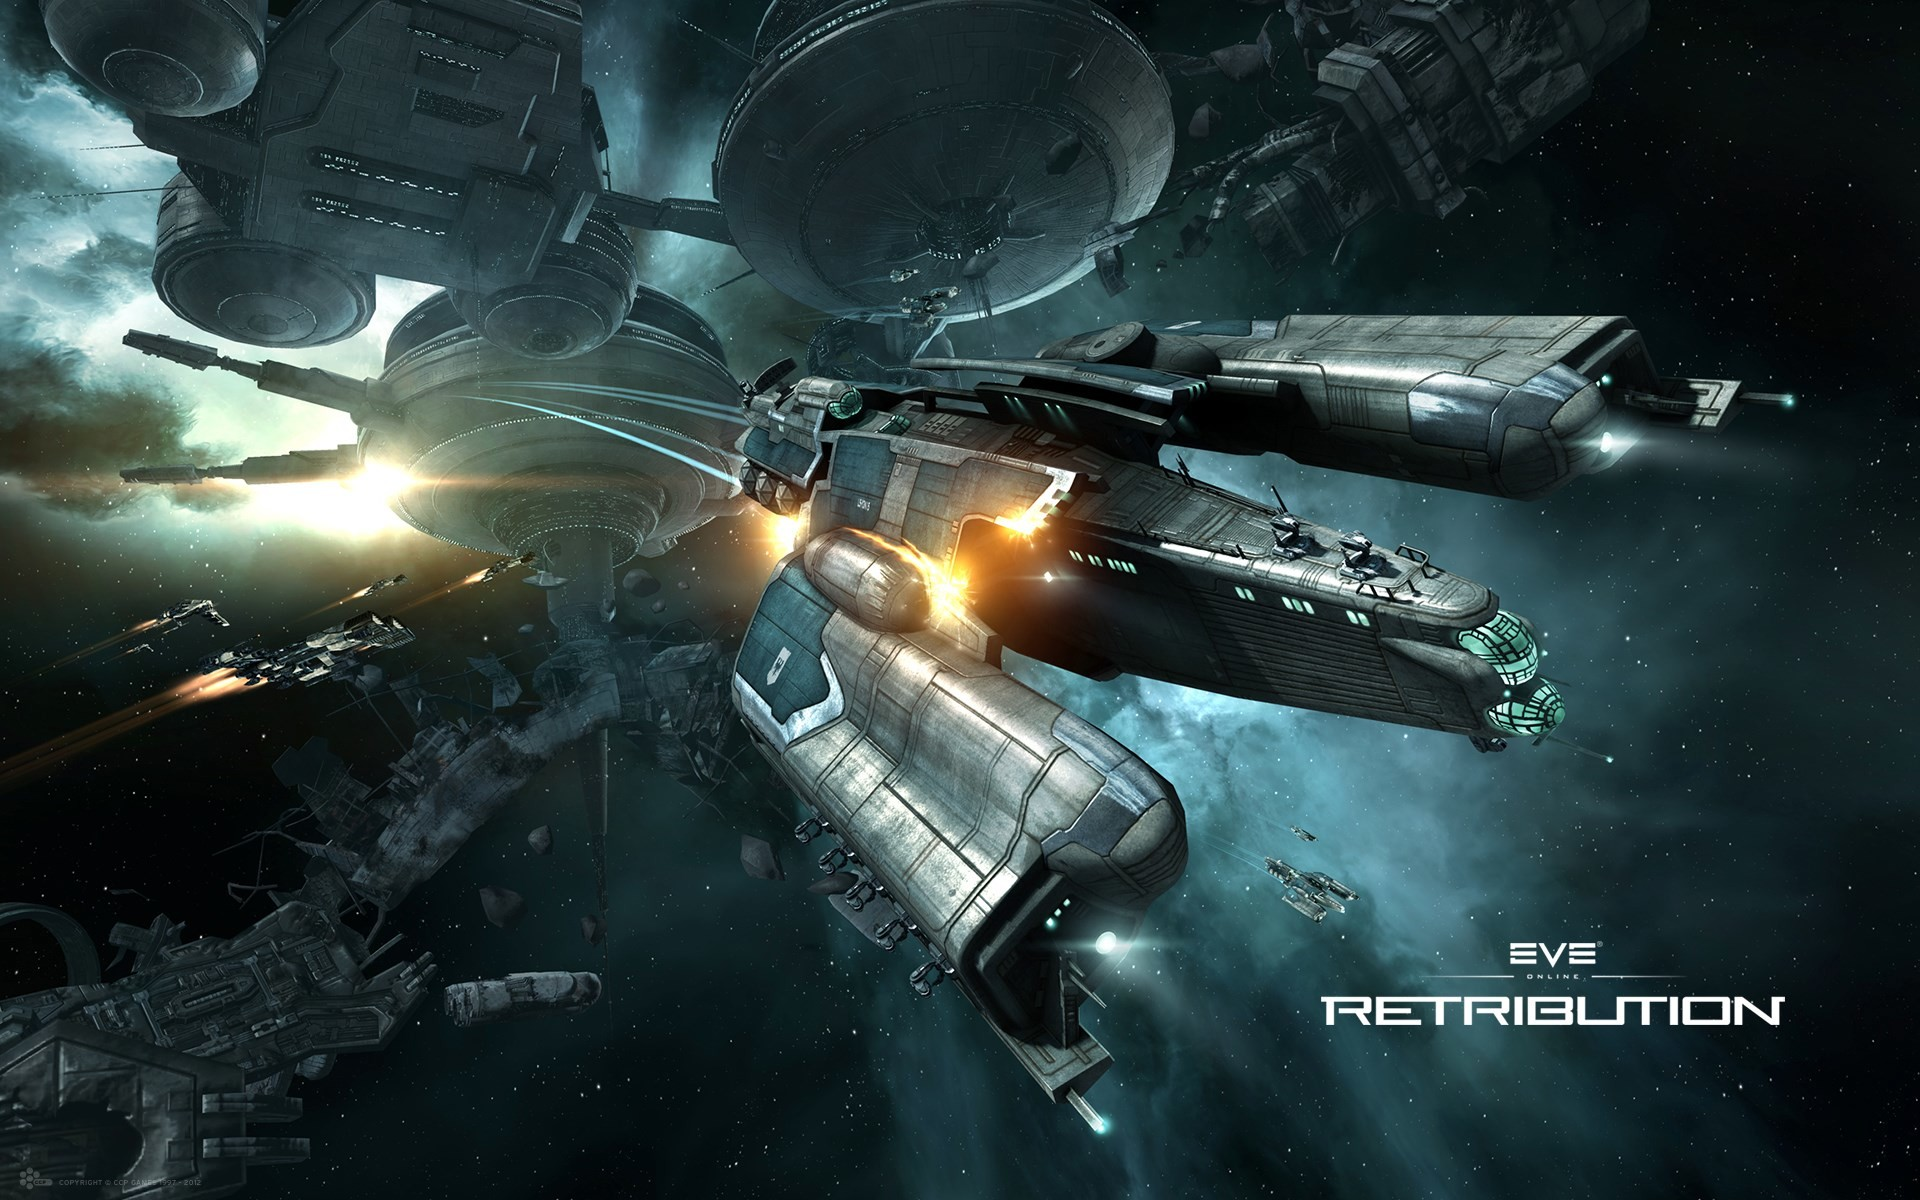 high resolution wallpapers widescreen eve online – eve online category